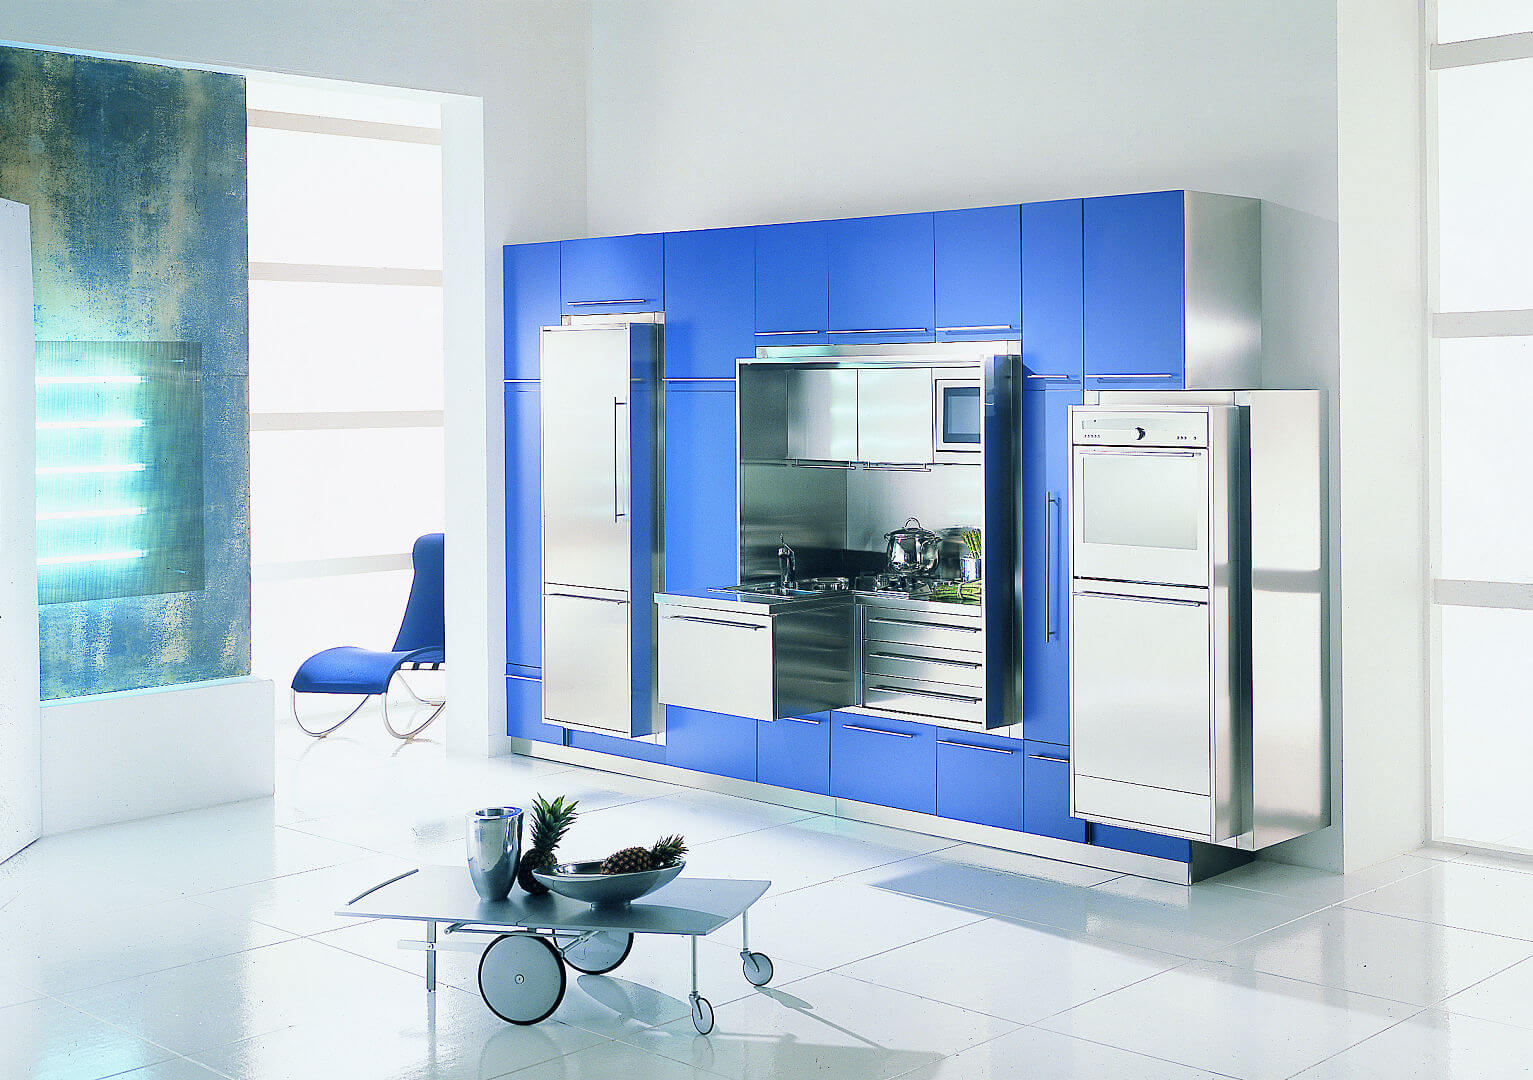 Image result for wall art by arca cucine